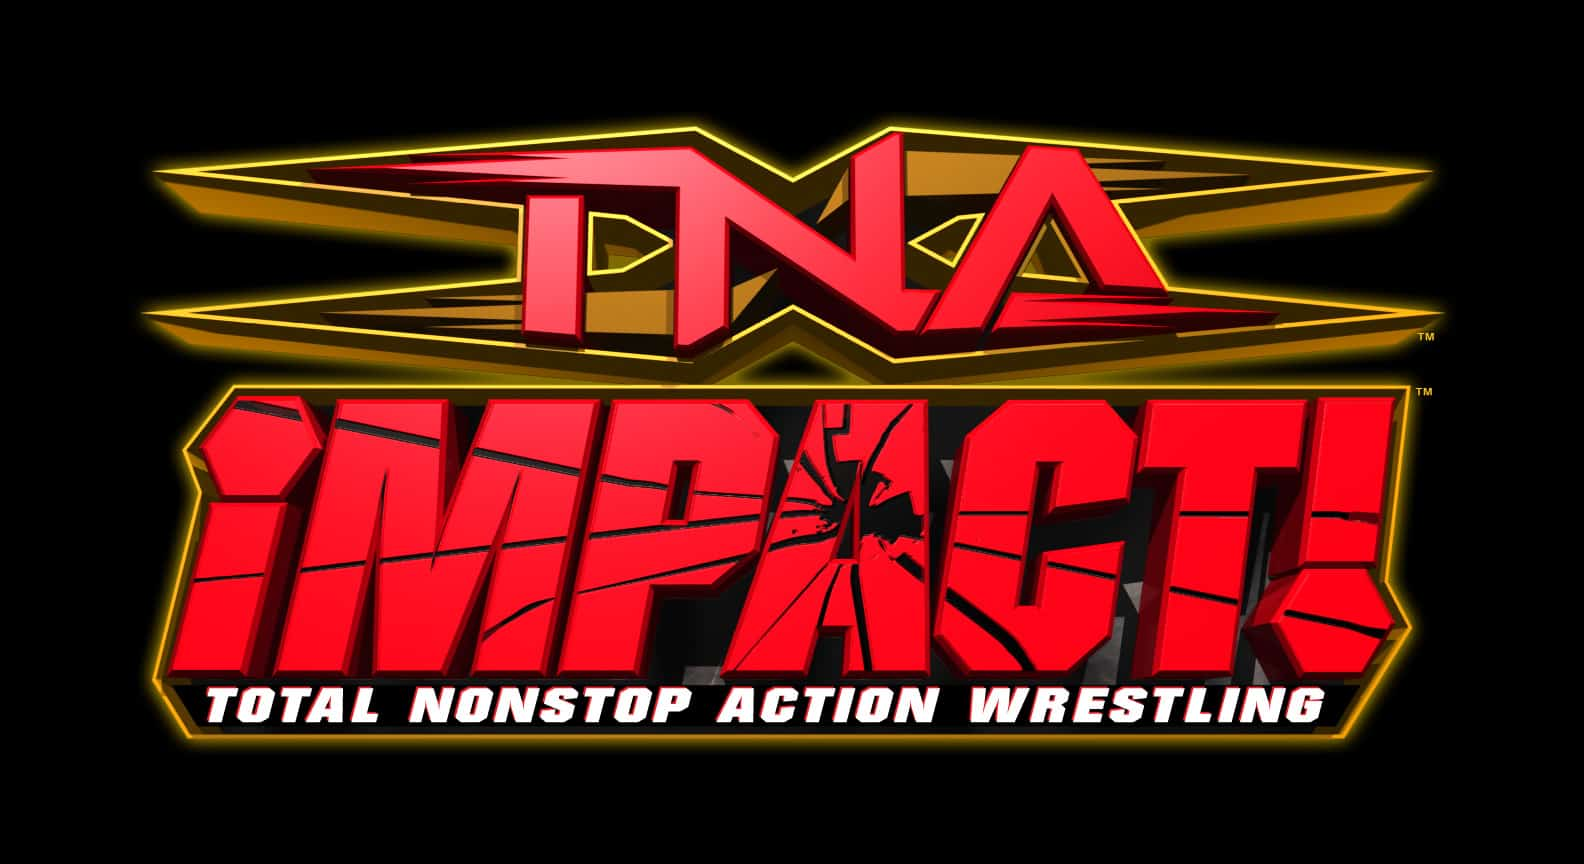 Impact Wrestling's Time Machine: TNA Originals to Make Impact Great - TNA Impact Wrestling Logo (Formerly Impact Ventures LLC now owned by Anthem)